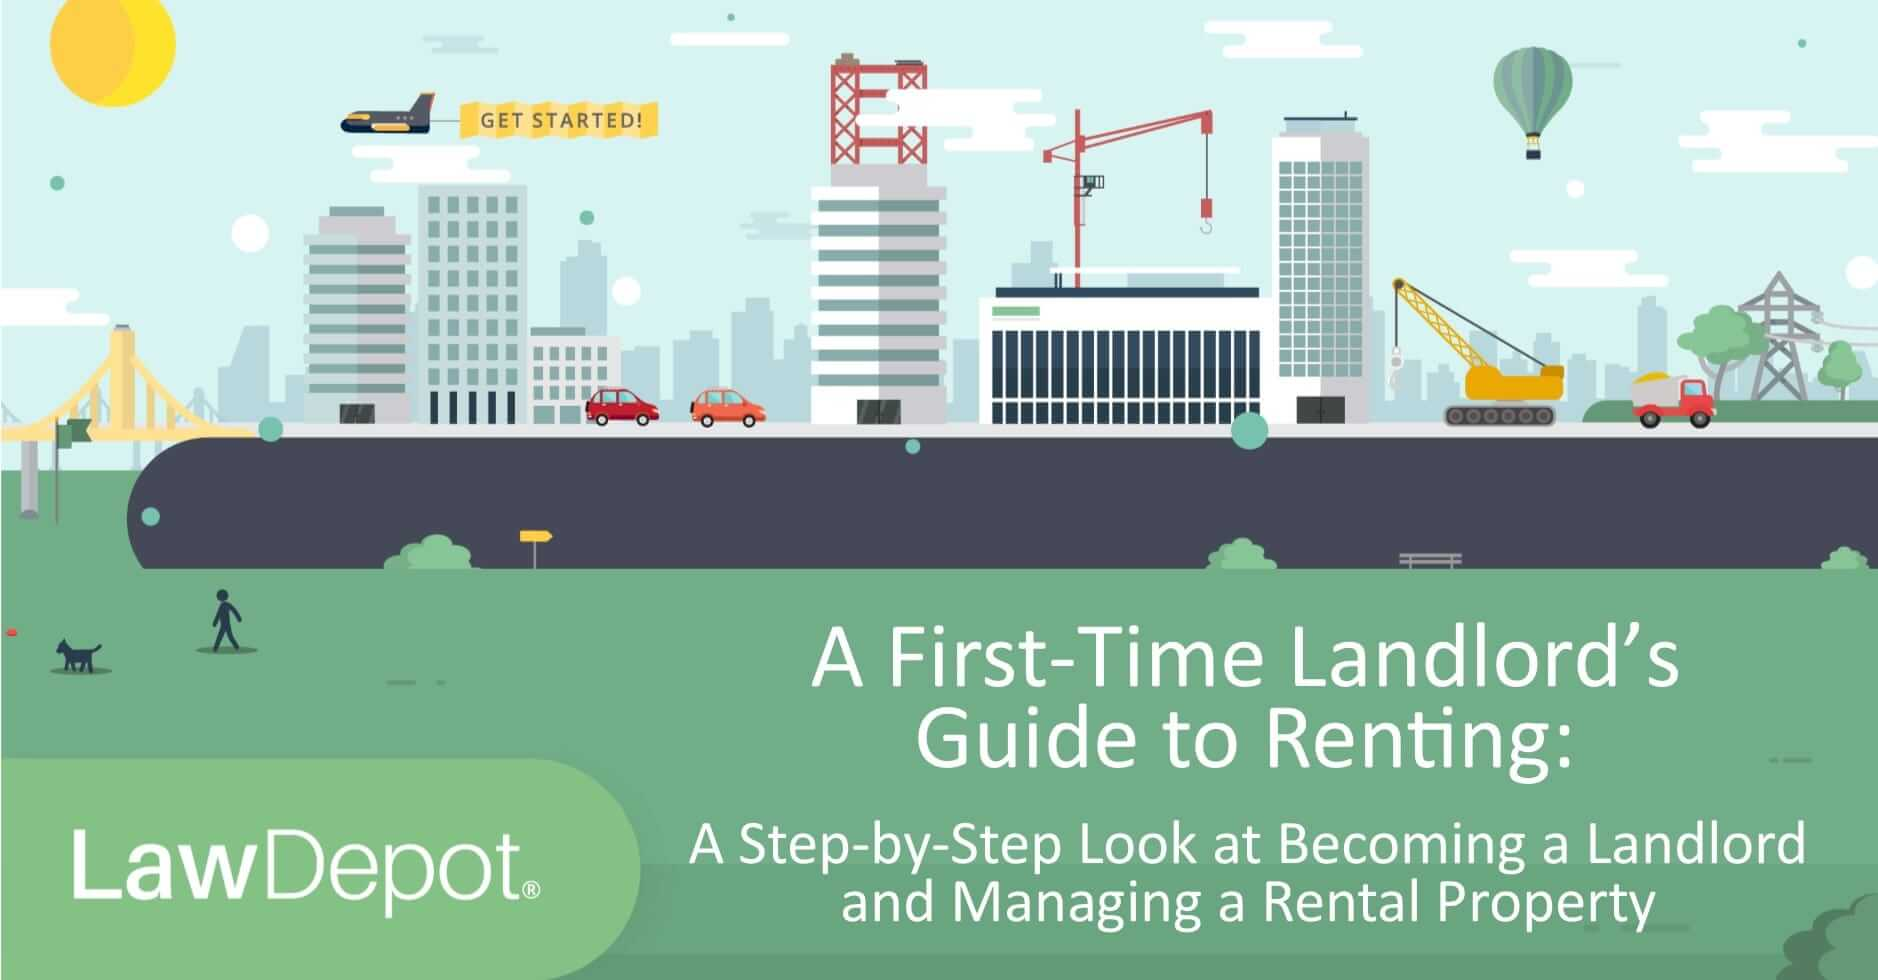 A First-Time Landlord's Guide to Renting - LawDepot com